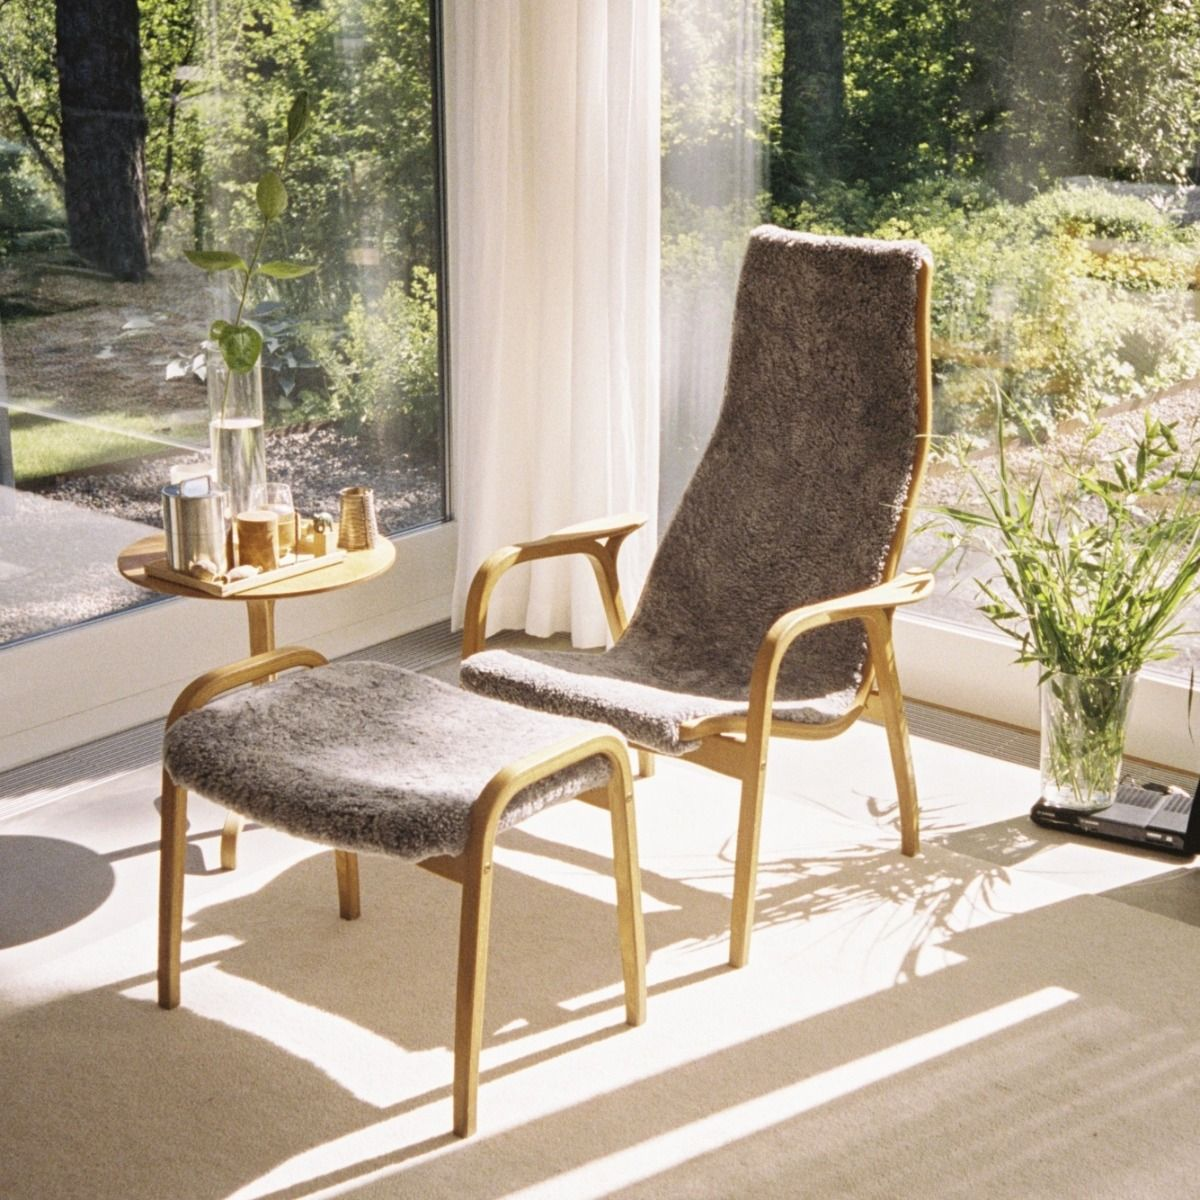 Lamino Easy Chair by window with Lamino table